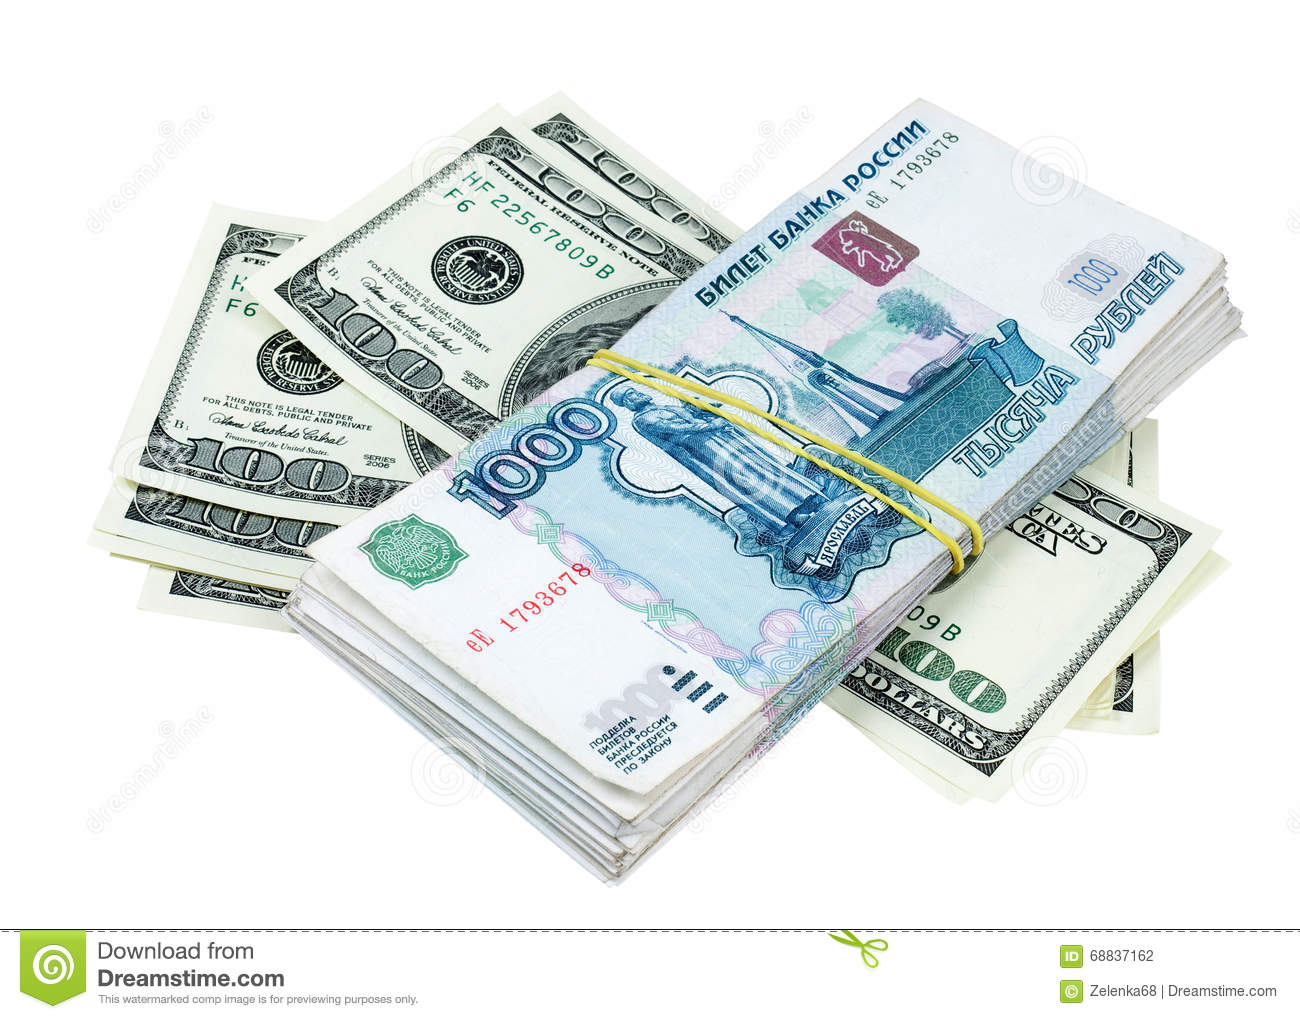 American dollars and Russian rubles